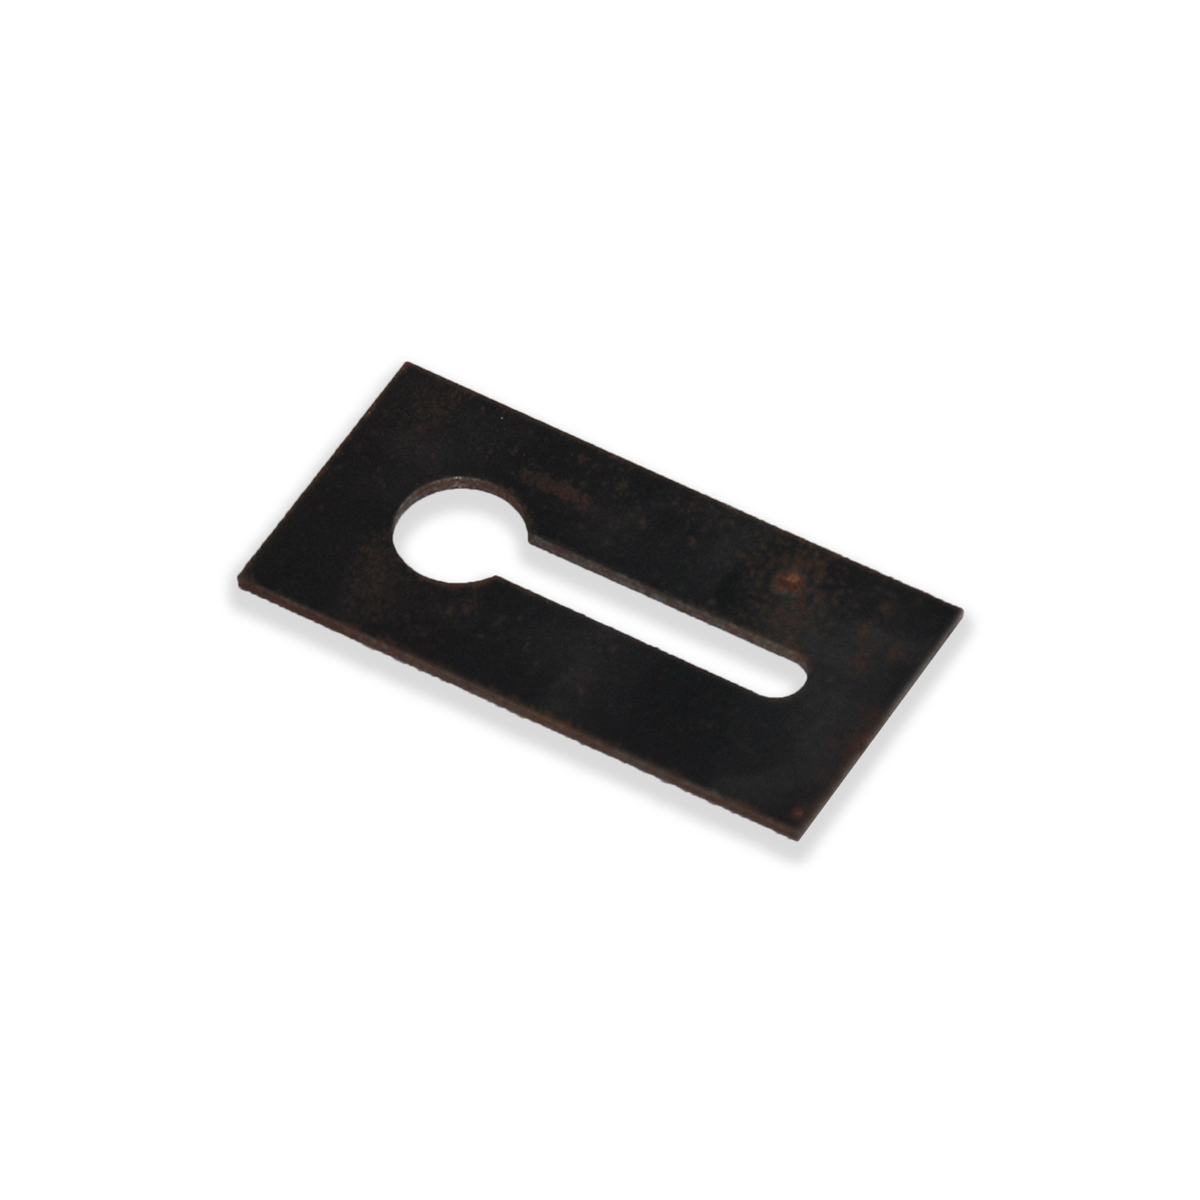 KEY SHIM: CARBON STEEL